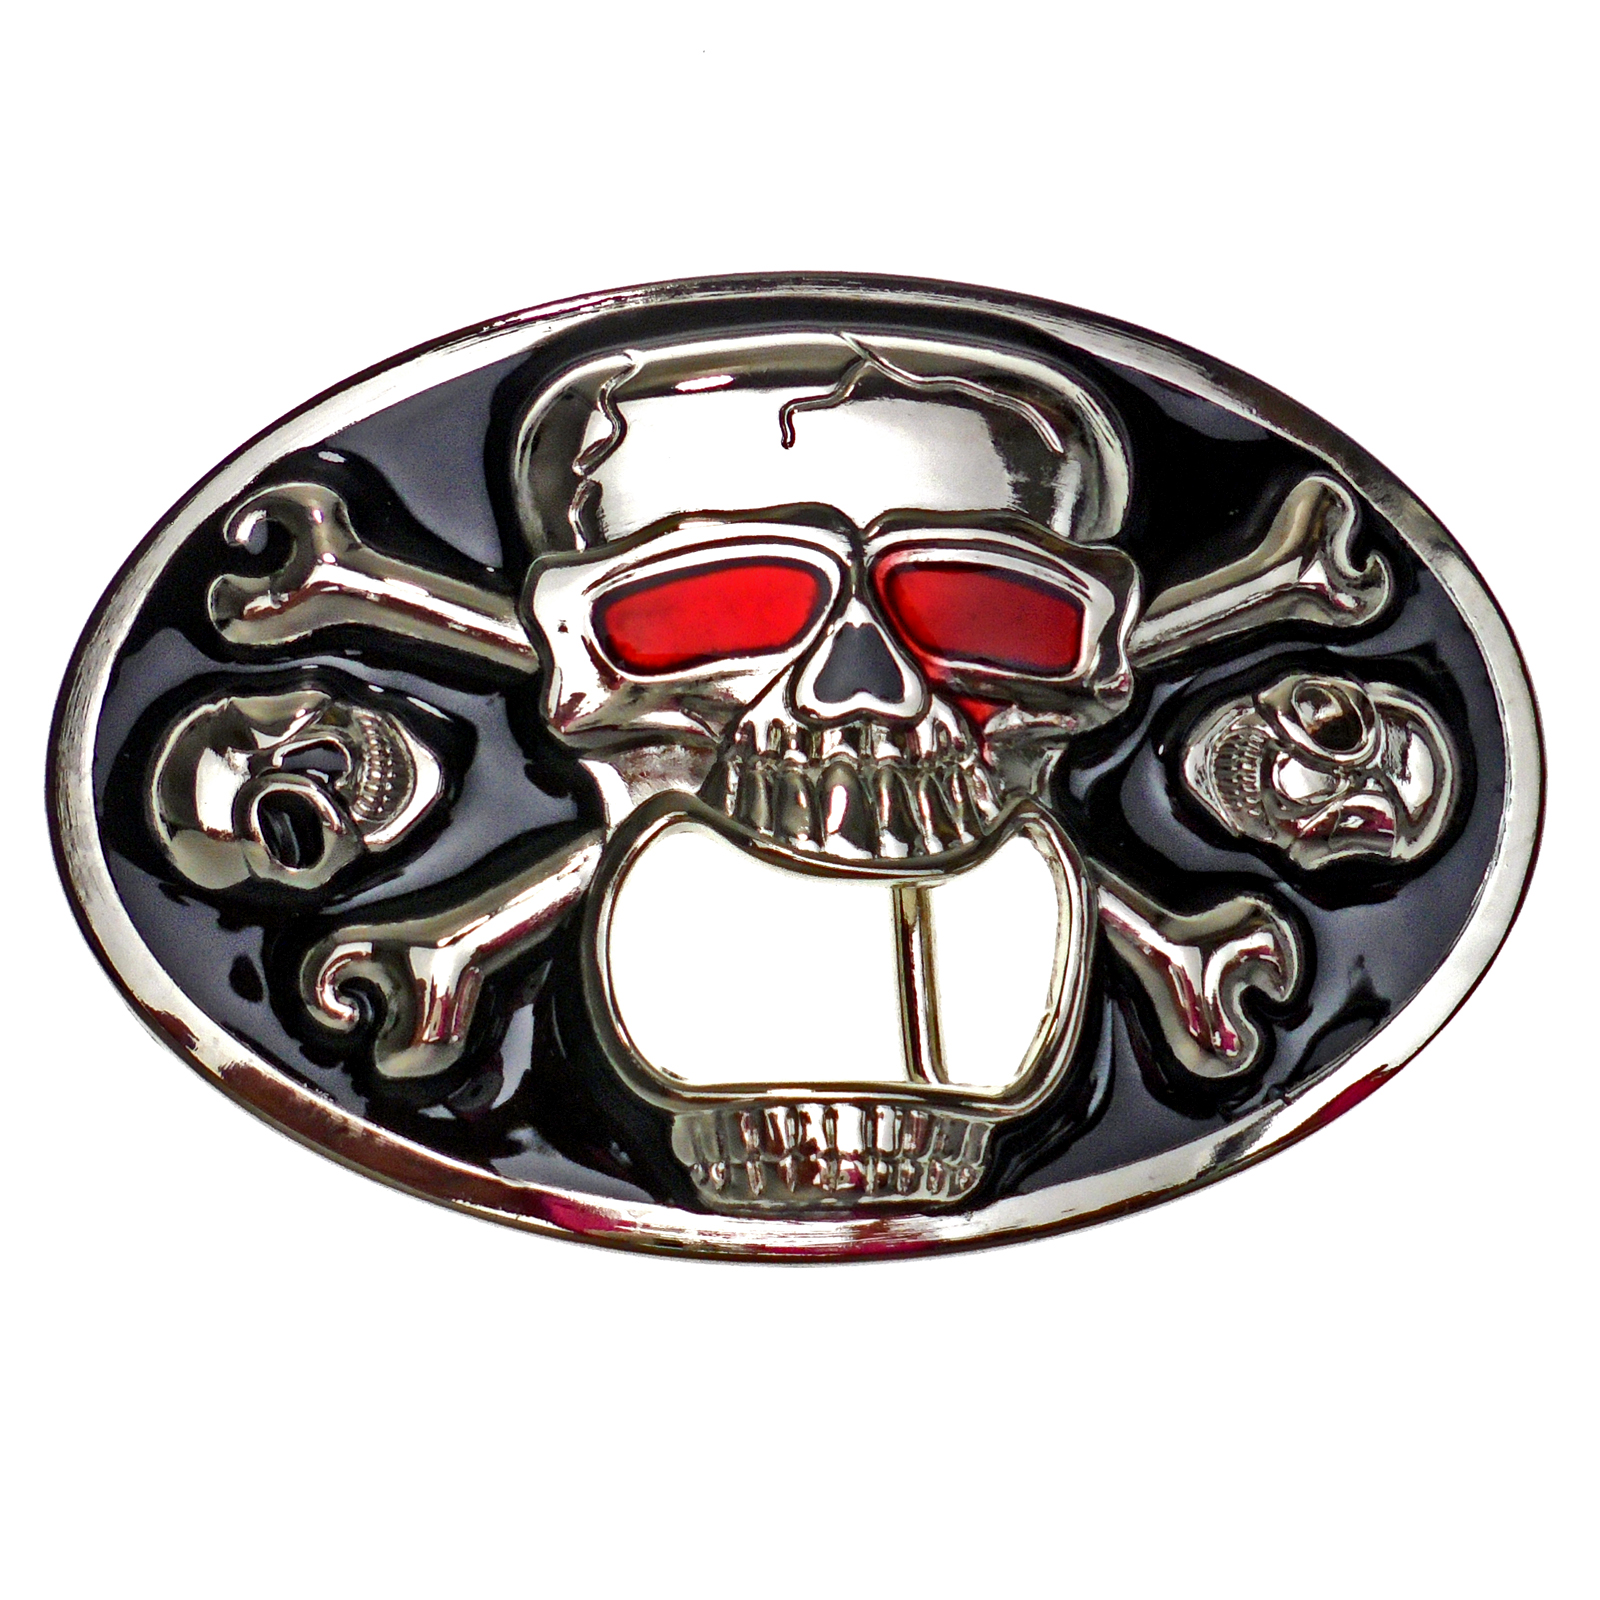 buckle skull bones with bottle opener skull belt buckle ebay. Black Bedroom Furniture Sets. Home Design Ideas